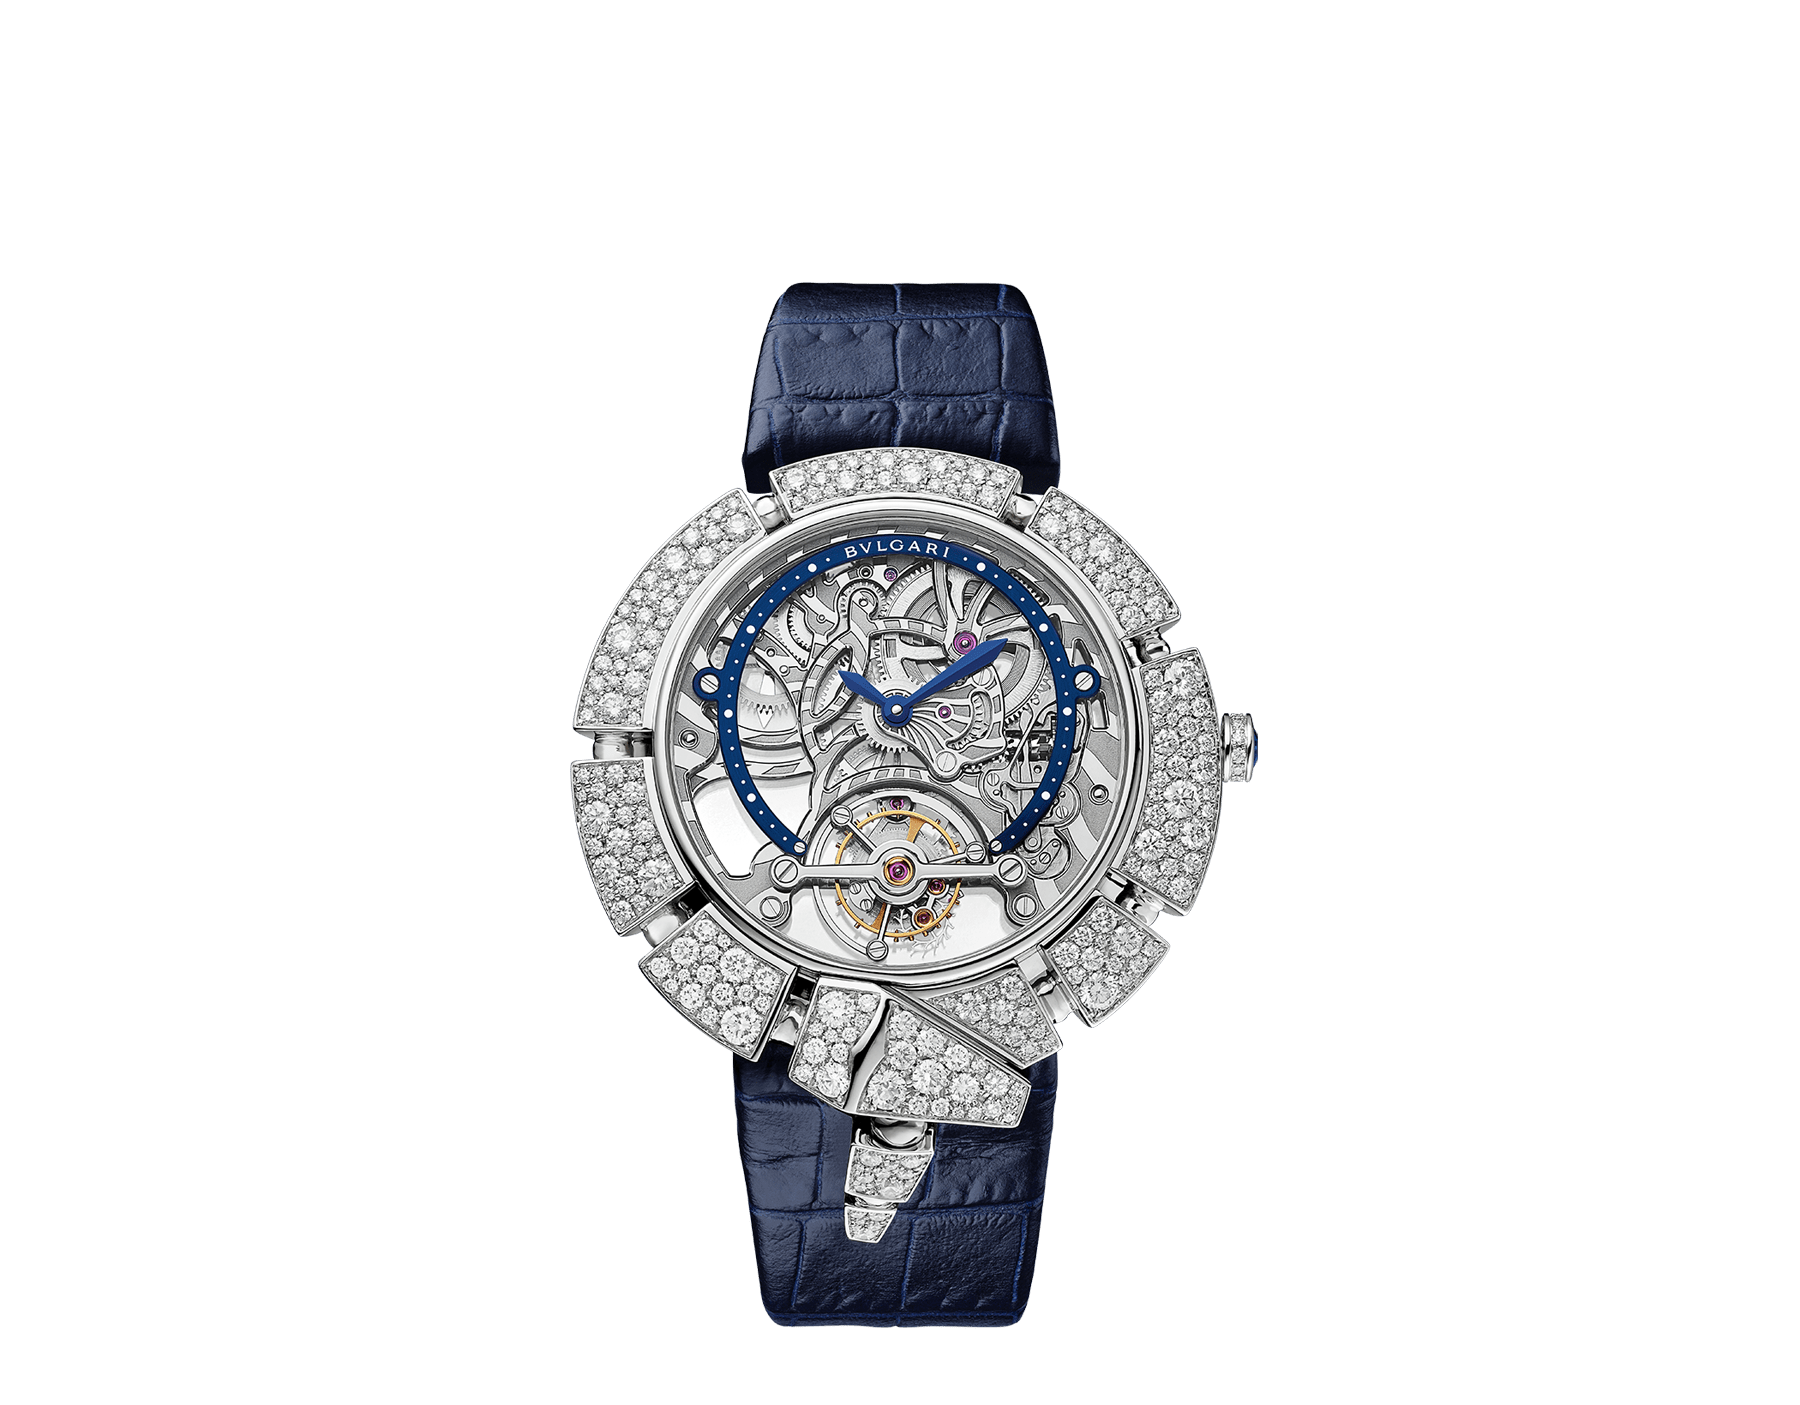 Serpenti Incantati Limited Edition watch with mechanical manufacture skeletonized movement, tourbillon and manual winding. 18 kt white gold case set with brilliant cut diamonds, transparent dial and blue alligator bracelet. 102541 image 1